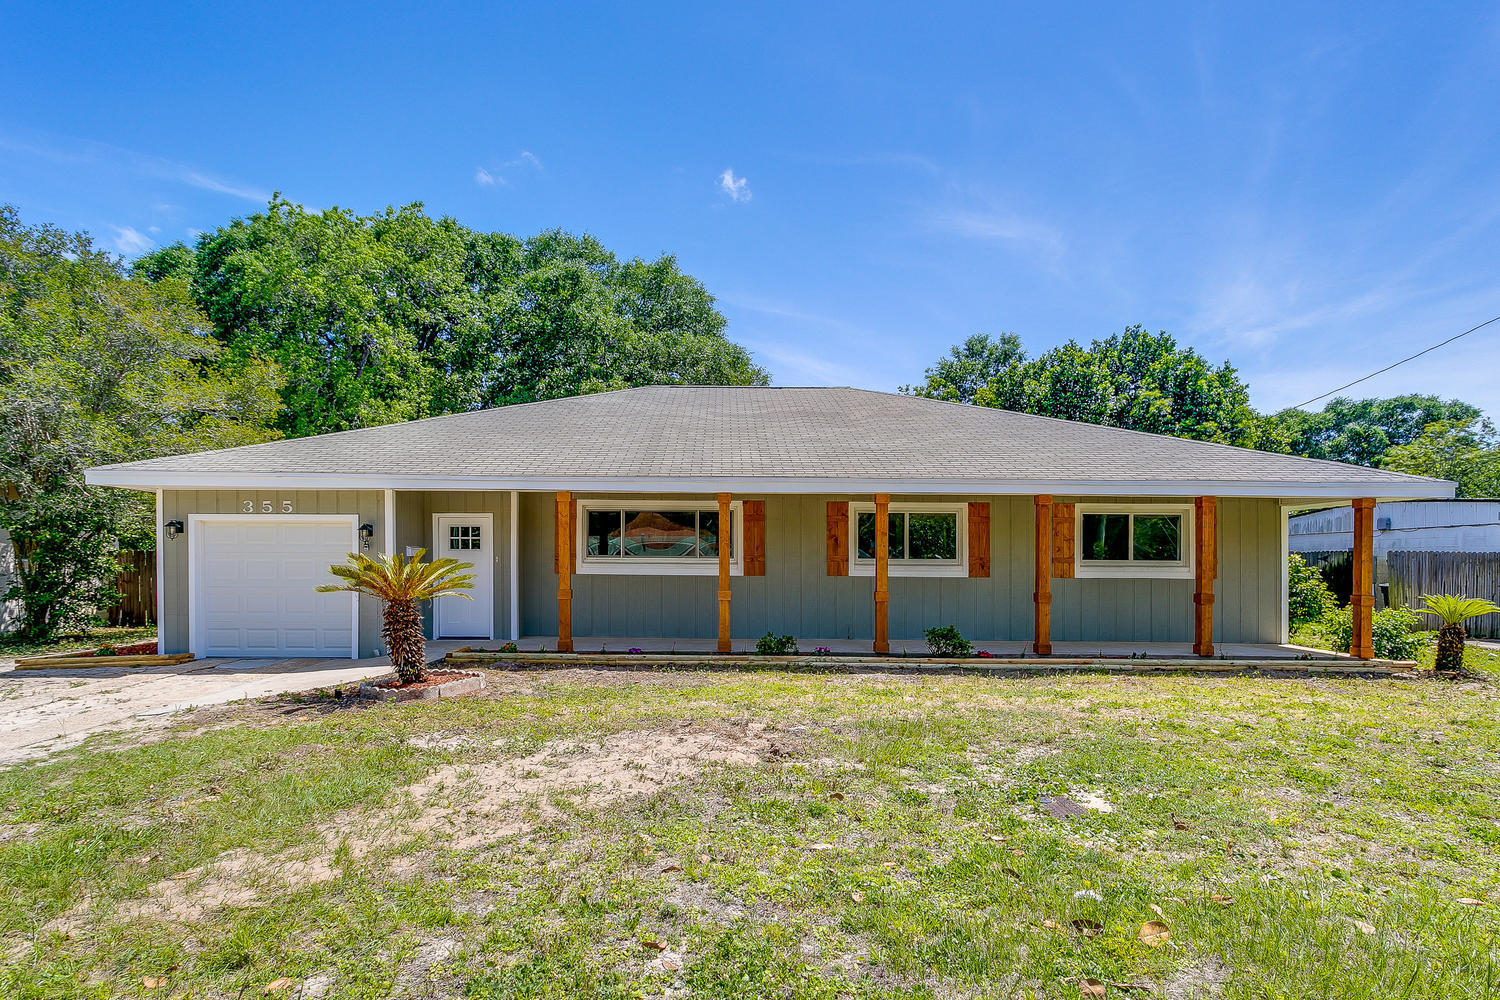 Photo of home for sale at 355 Gardner, Fort Walton Beach FL